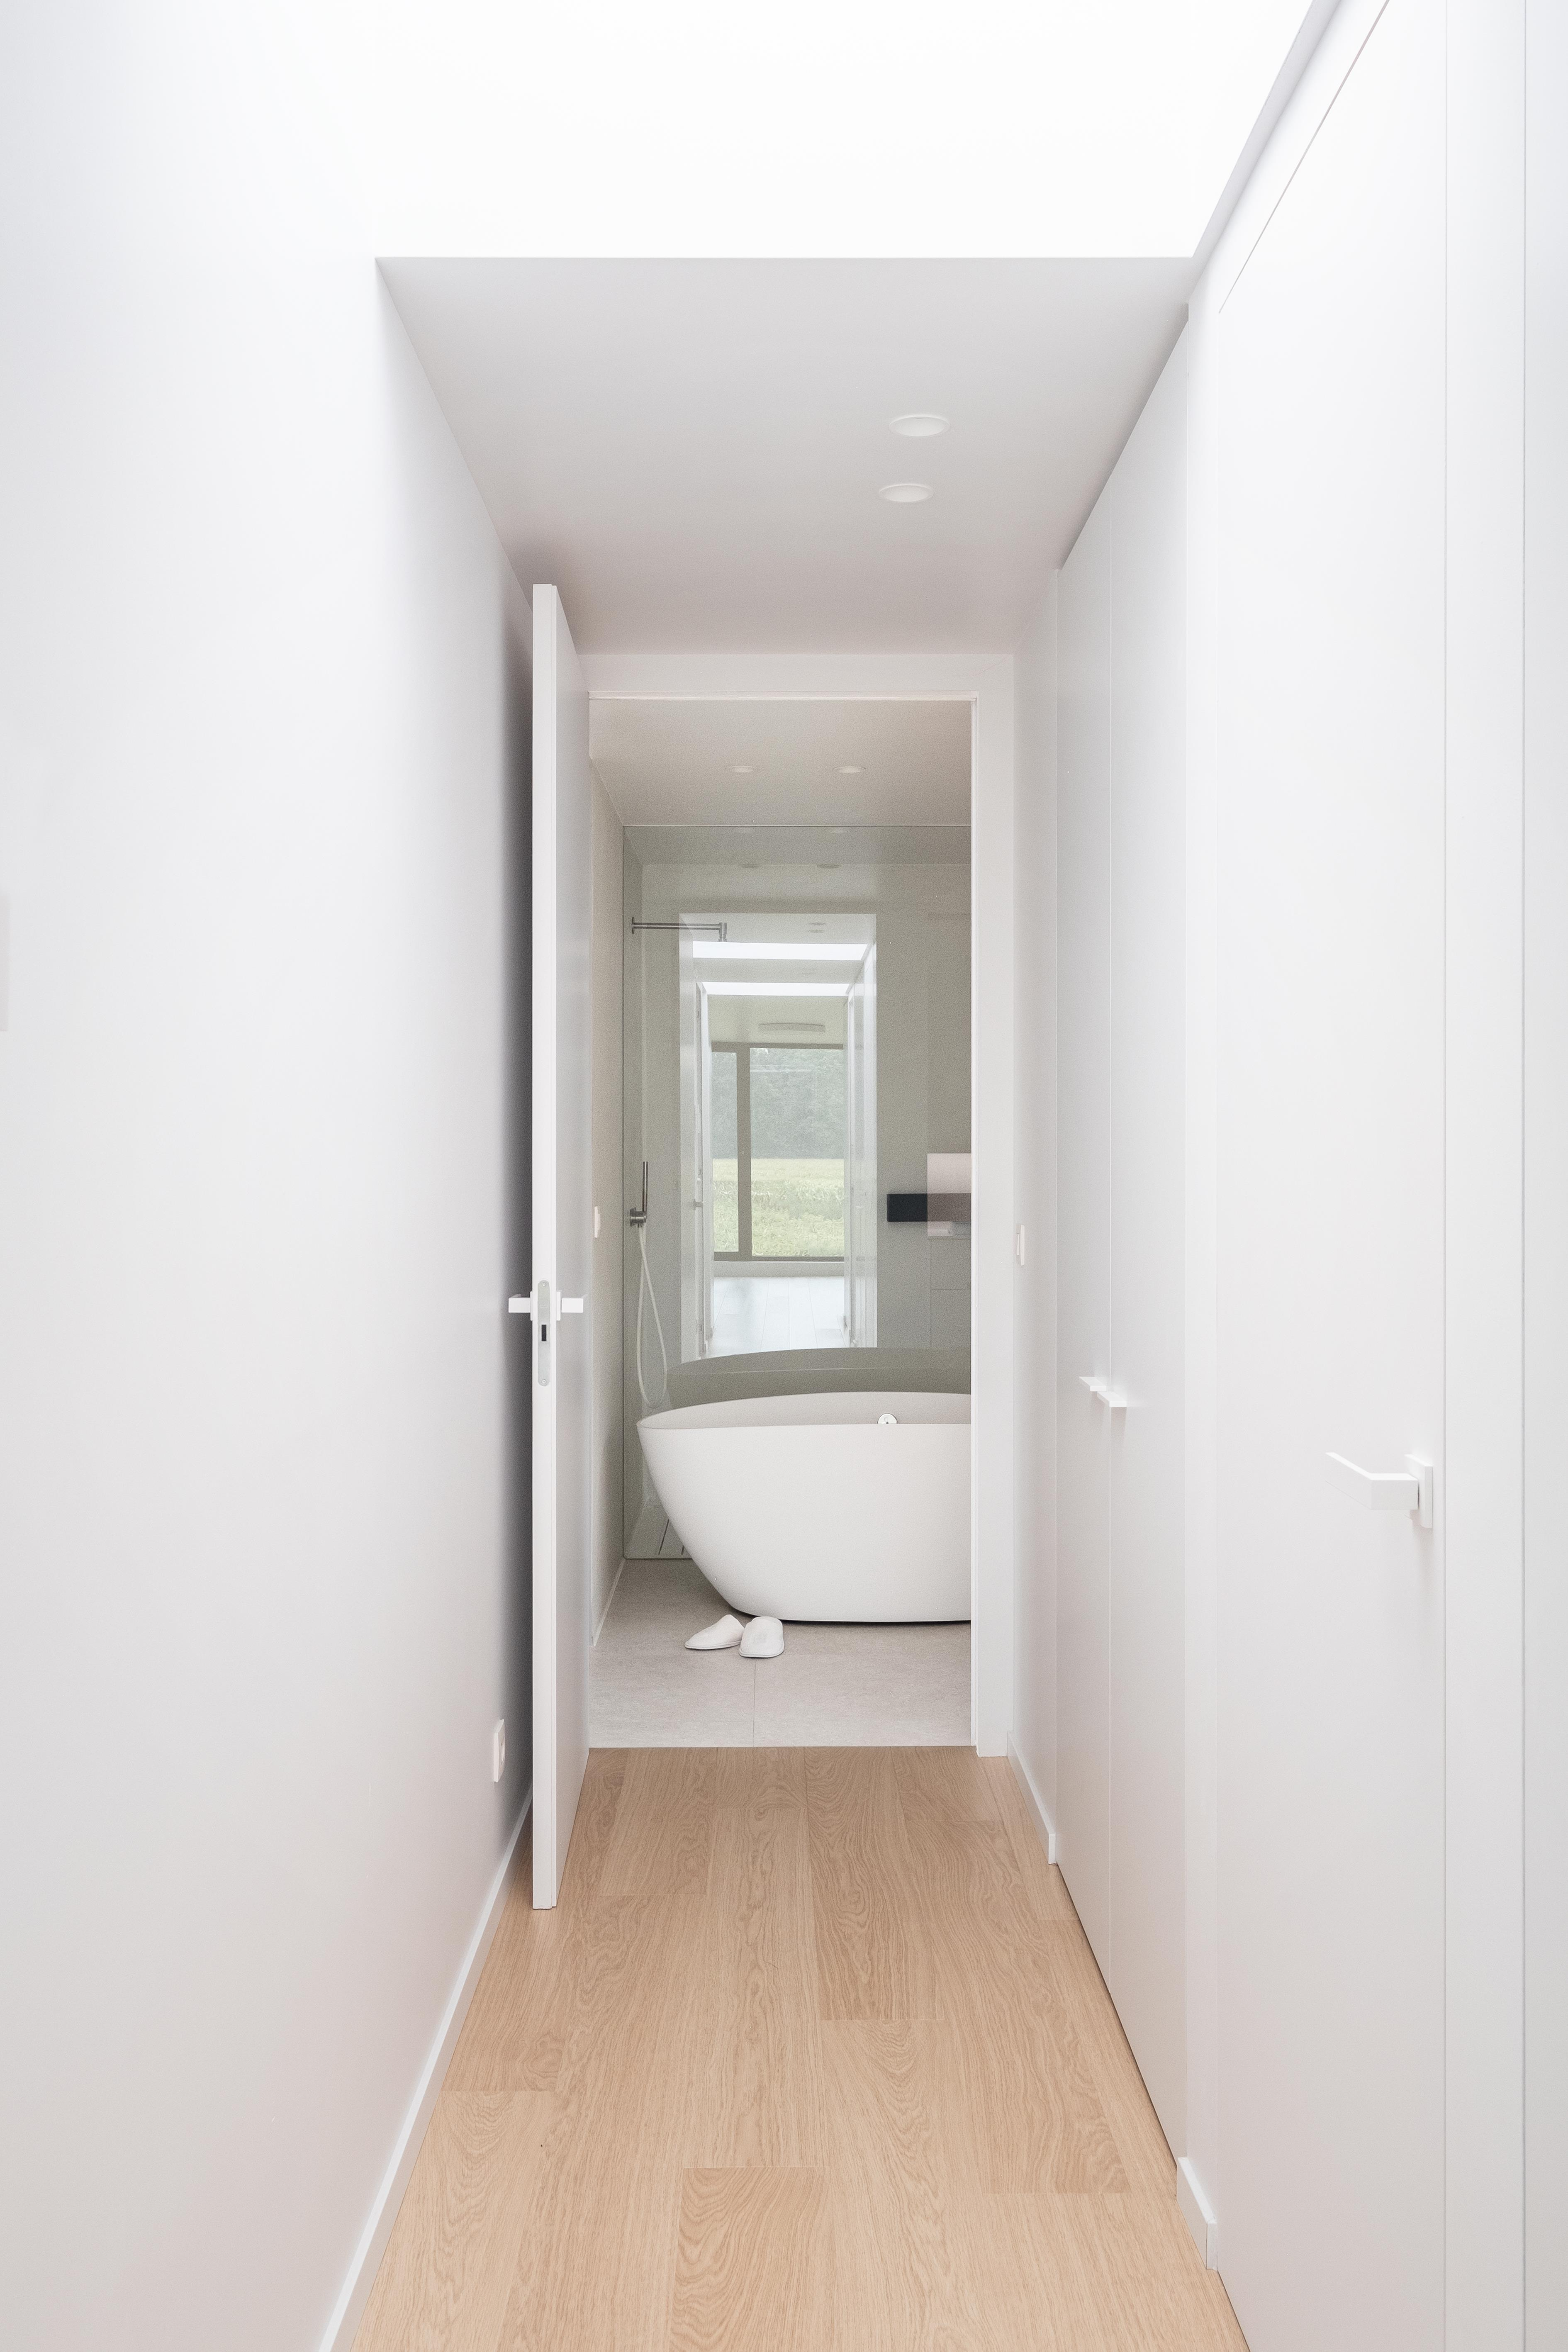 Frameless door